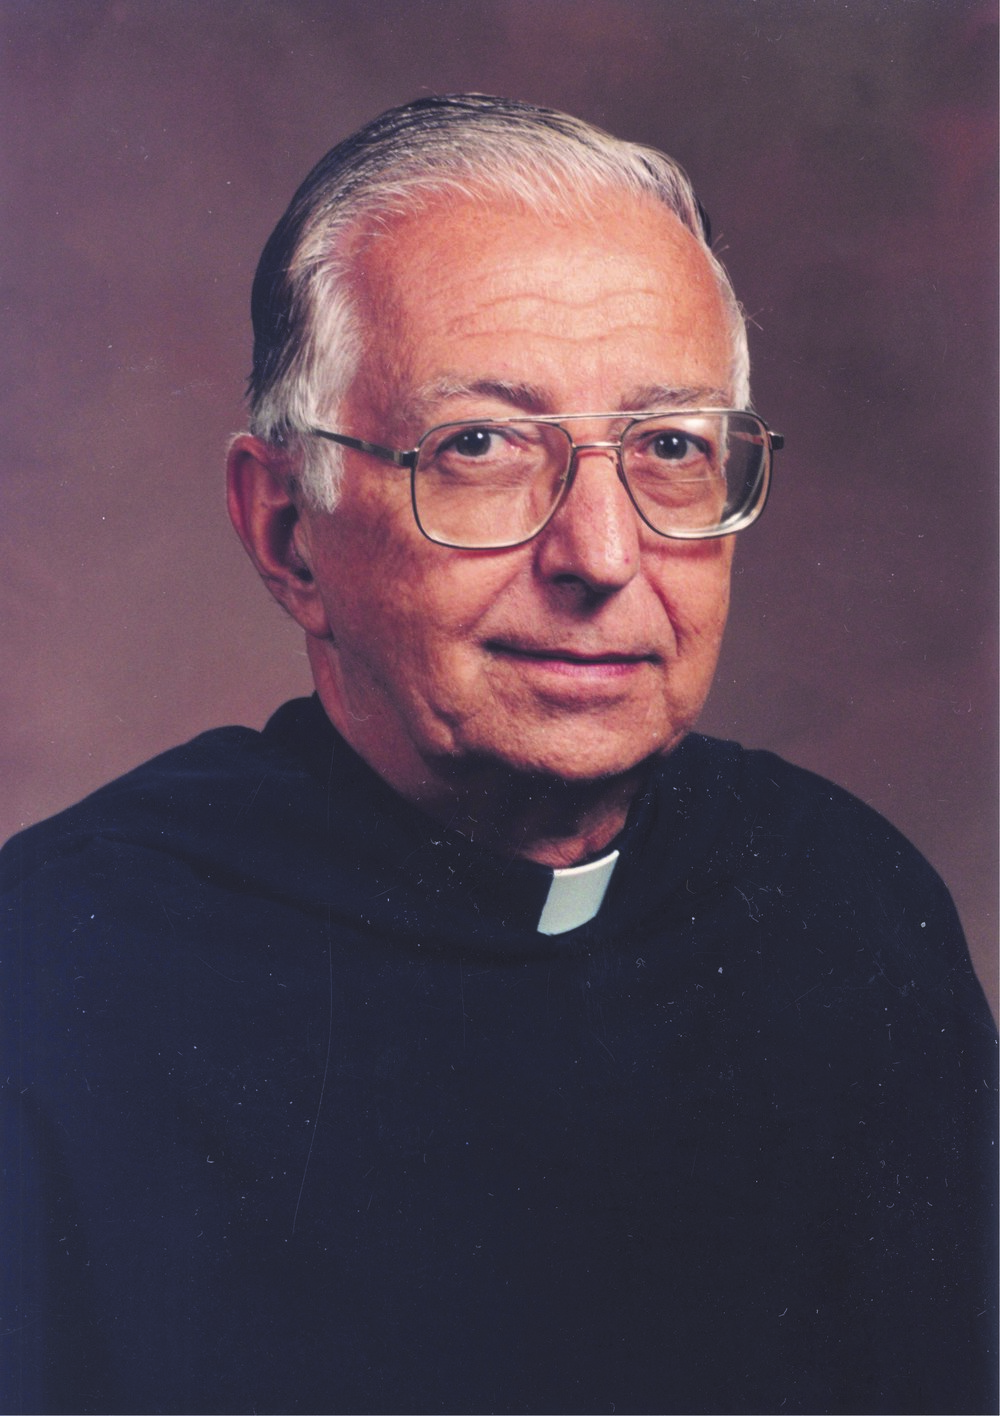 Father Dick Appicci, O.S.A., 1928-2007